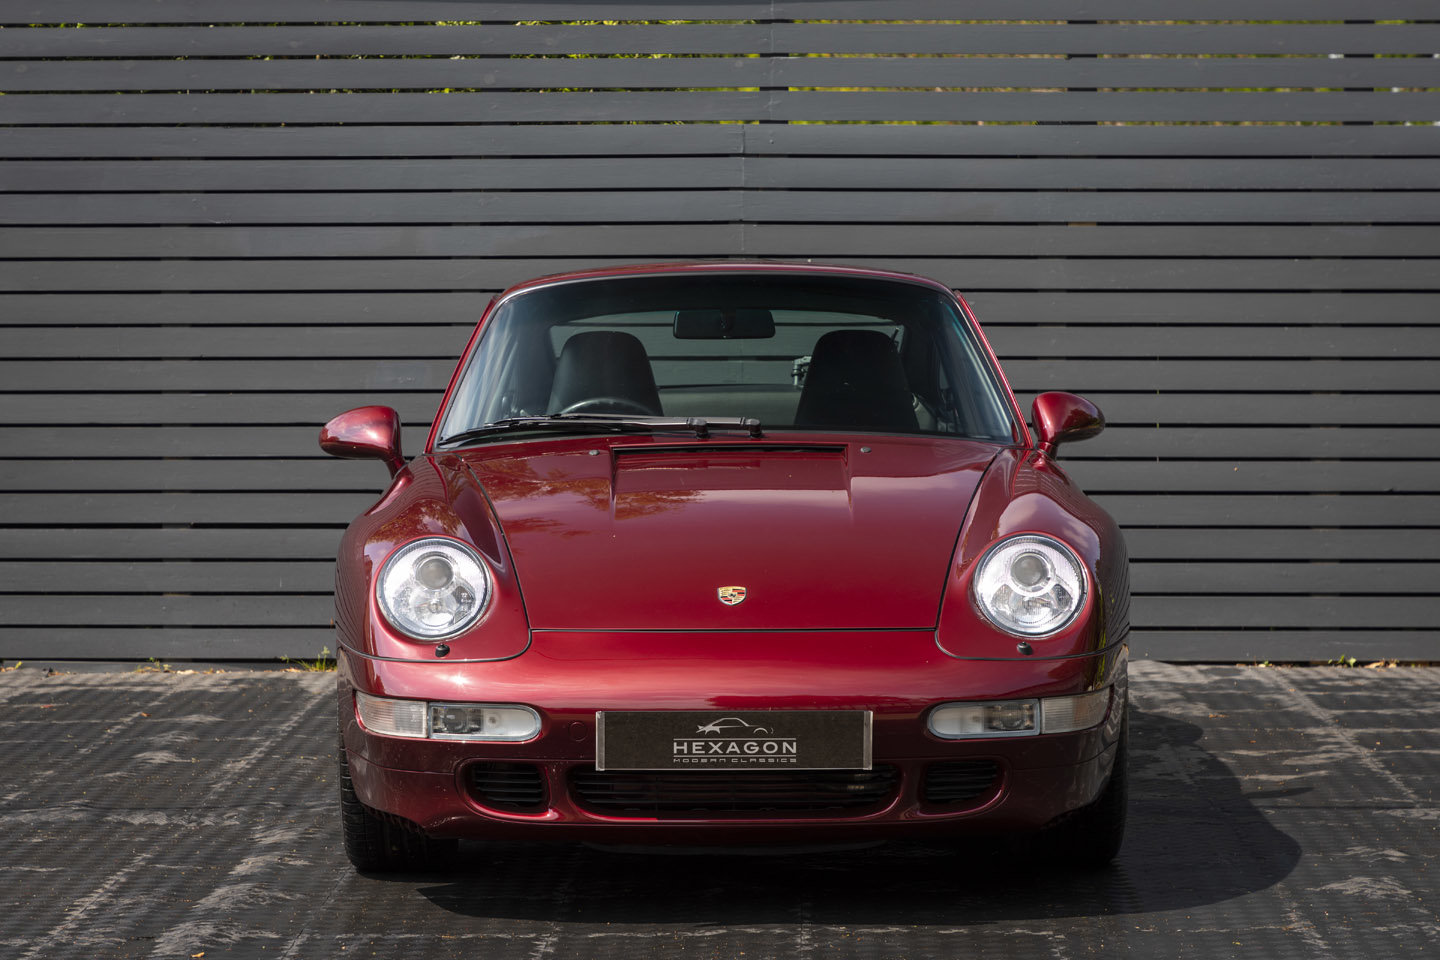 1995 PORSCHE 911 (993) TURBO ONLY UK CAR For Sale (picture 4 of 19)